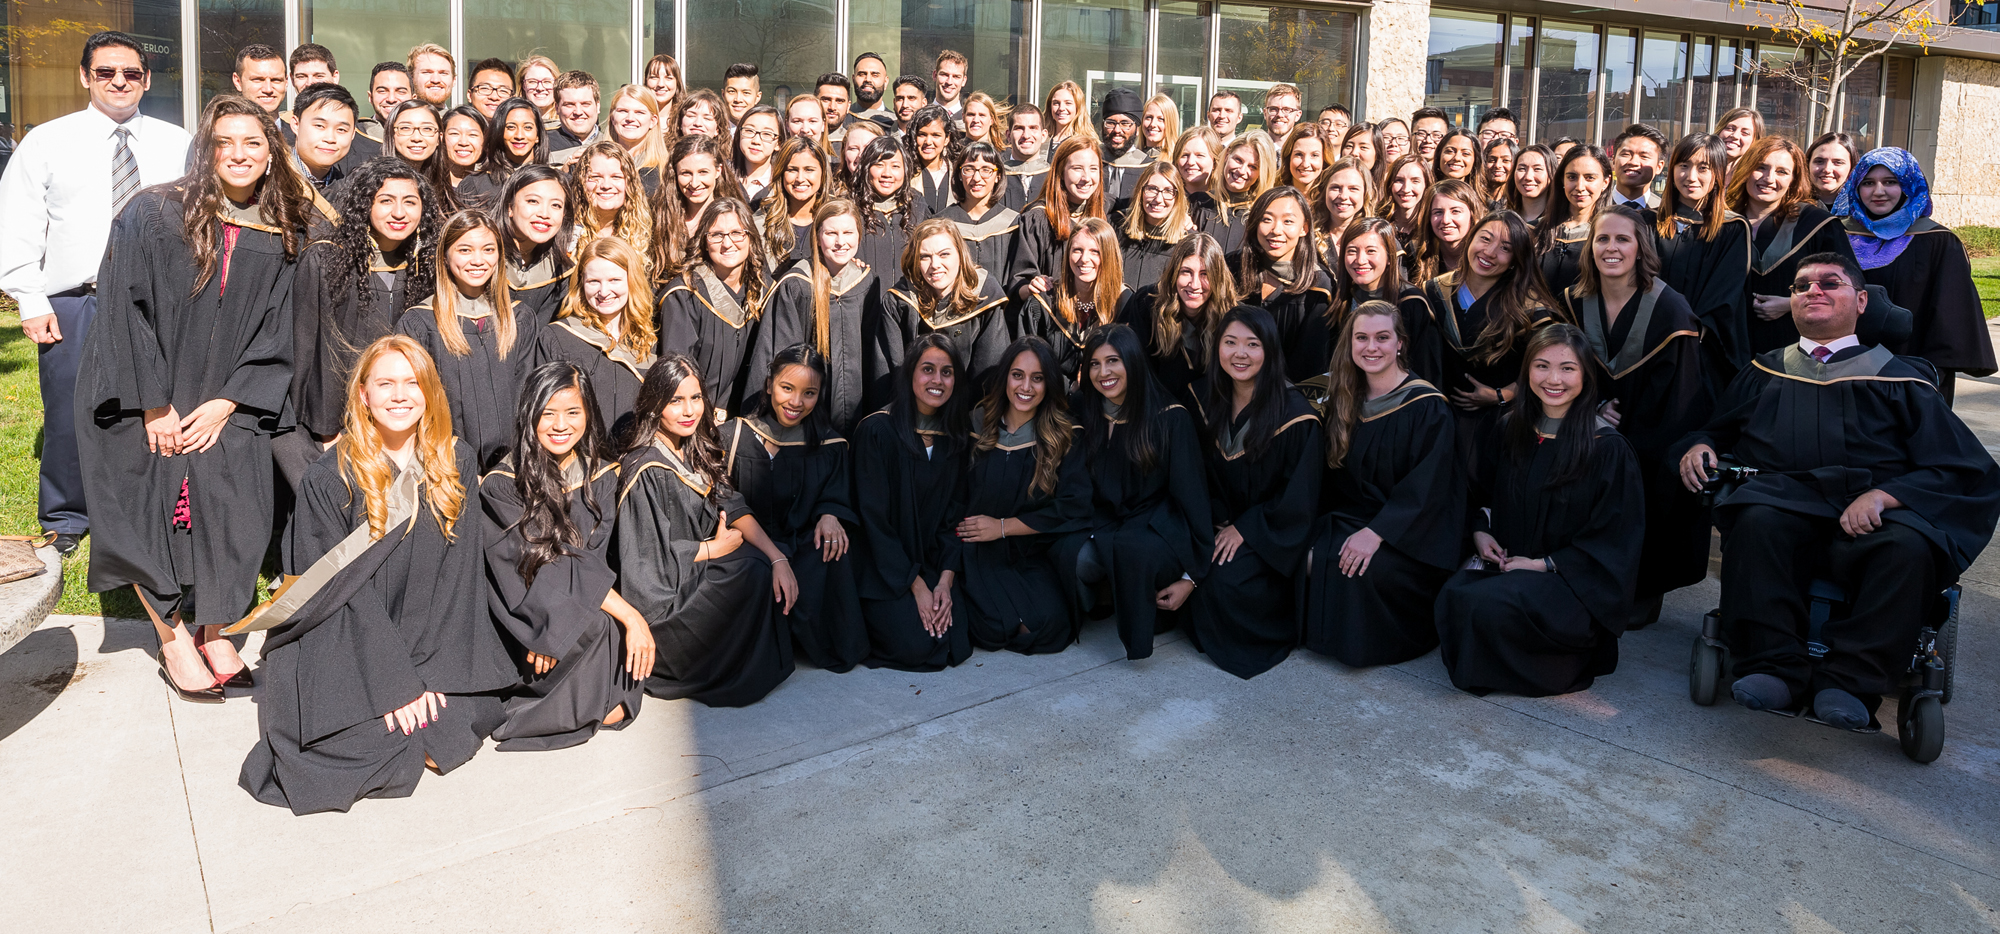 Rx2017 in their convocation robes